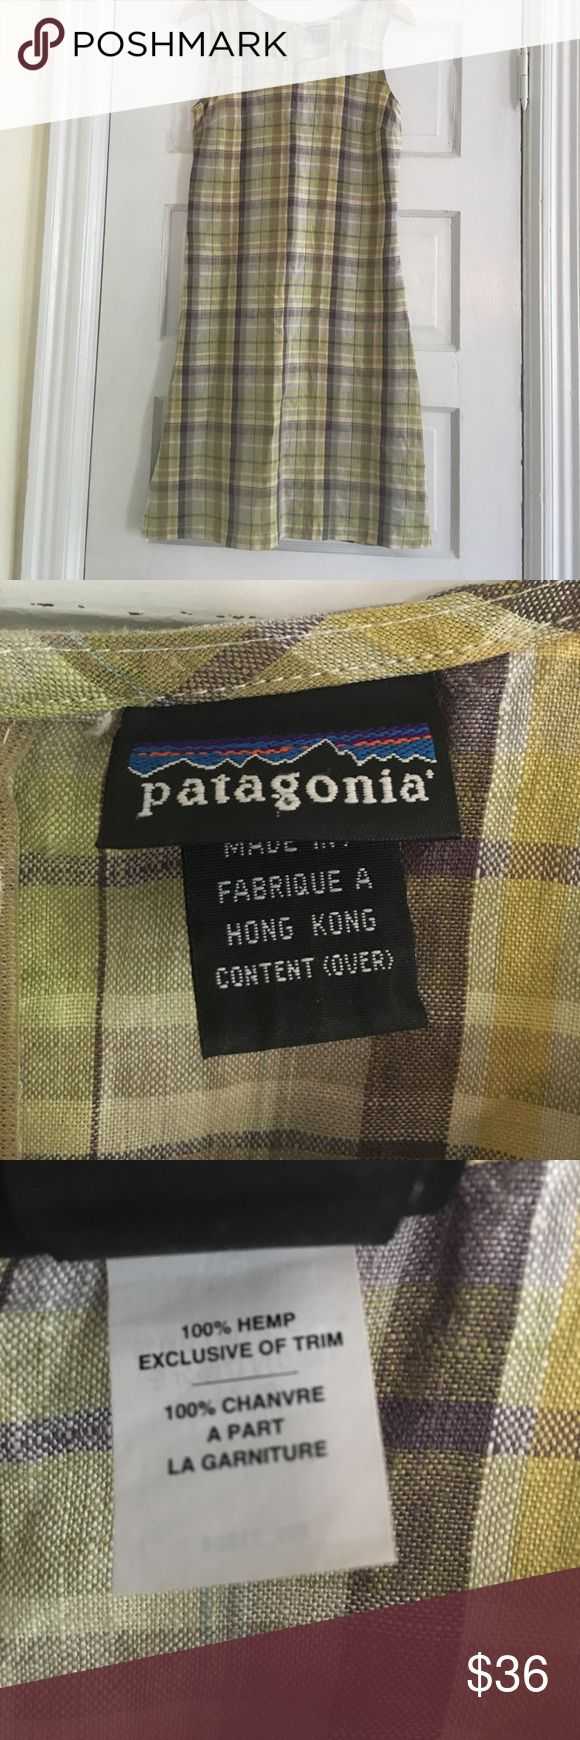 Patagonia Dress size 6 EUC Patagonia brand summer dress size 6. 100% hemp, feels like linen. Shift style, very comfortable! True to size 6, falls at knee. Smoke free home. Patagonia Dresses